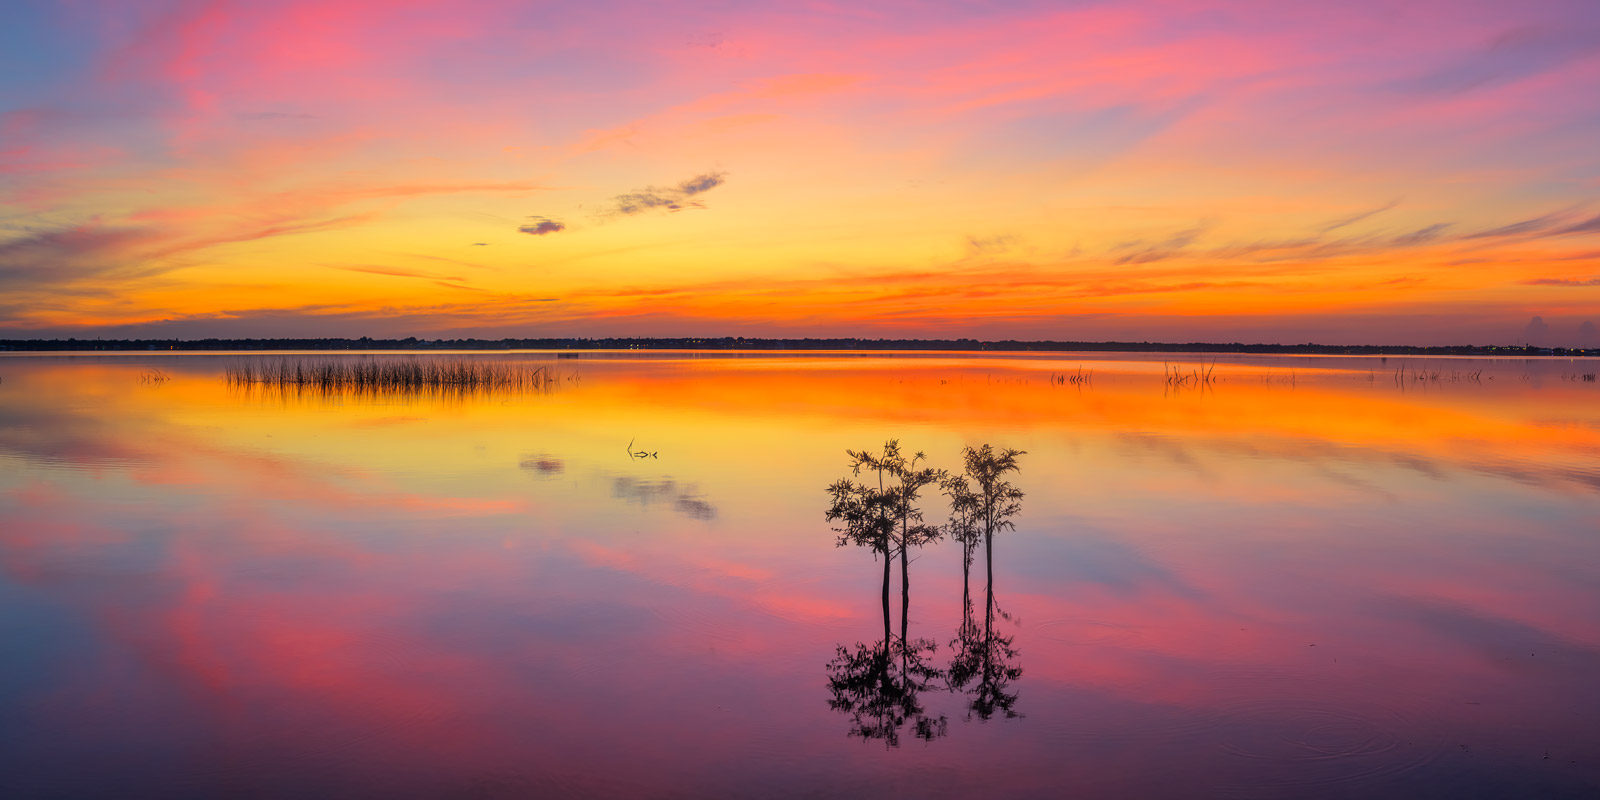 A Limited Edition, Fine Art photograph of a stunning sunrise at Lake Jackson in Sebring, Florida. Available as a Fine Art print...